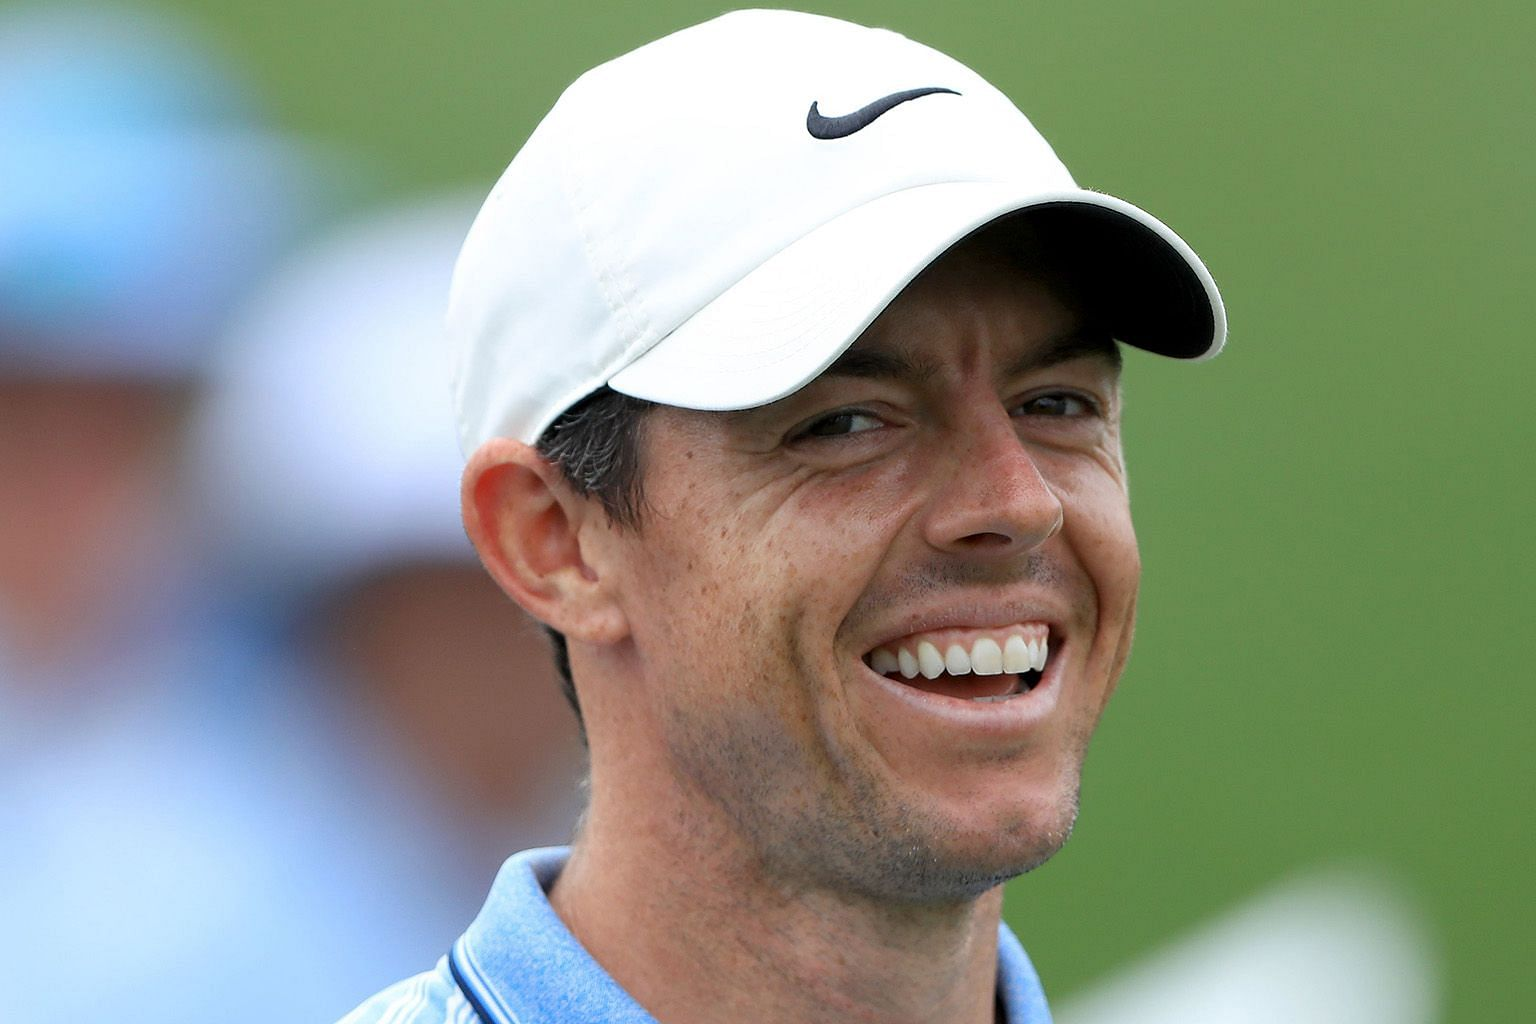 World No. 1 Rory McIlroy says the Masters will have a different feel when it is played in November instead of its traditional April slot but he is fine with the change.